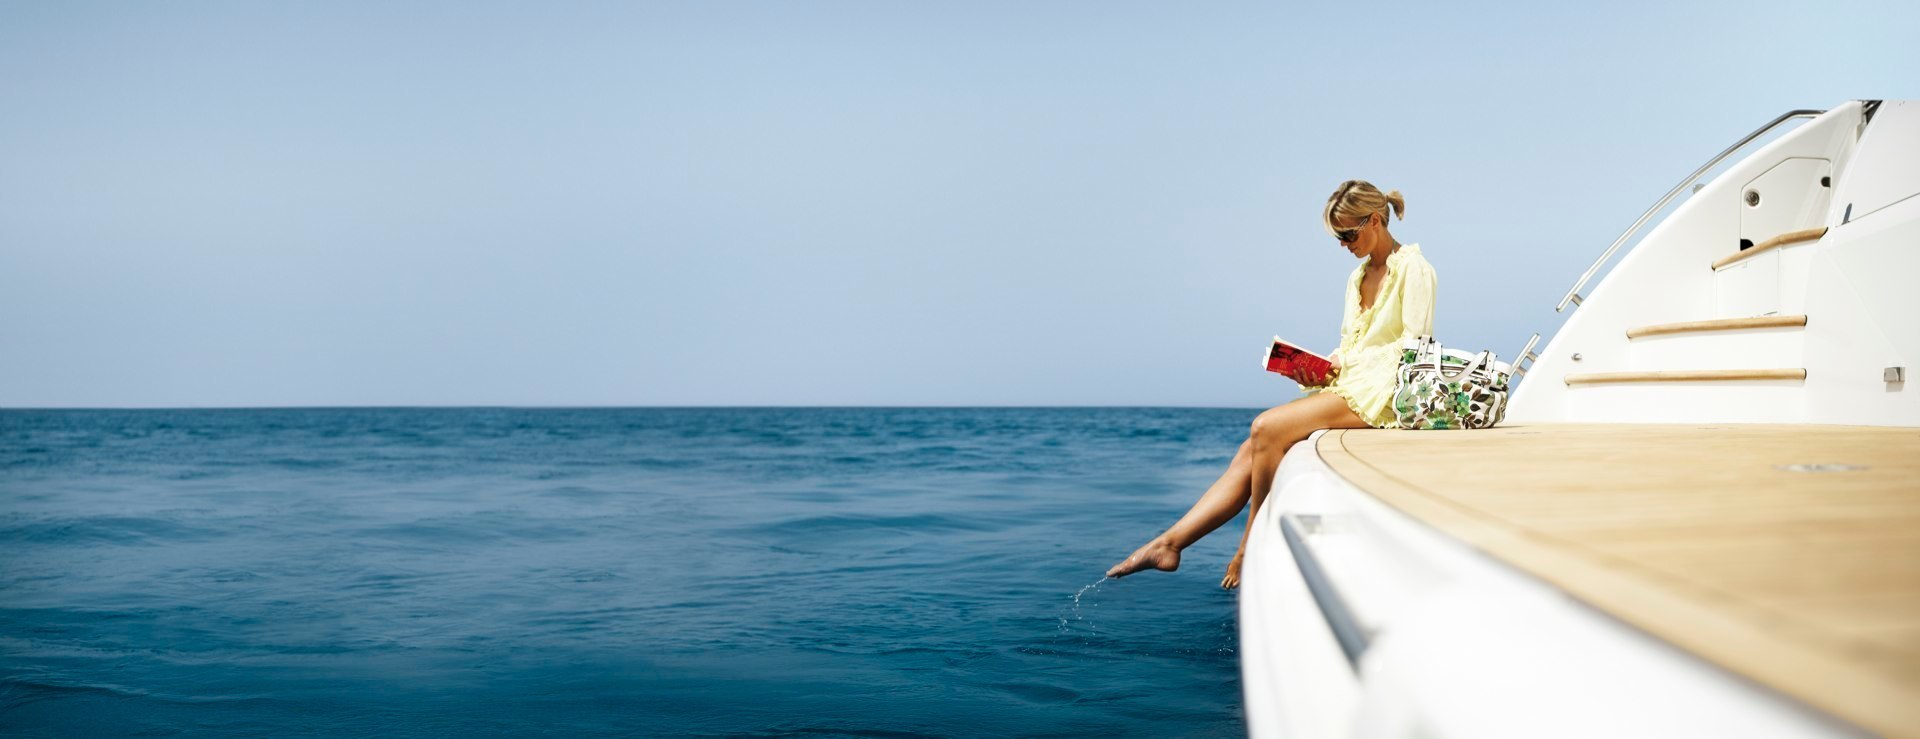 A yachting wallpaper photo of a girl on the aft deck on a luxury yacht.